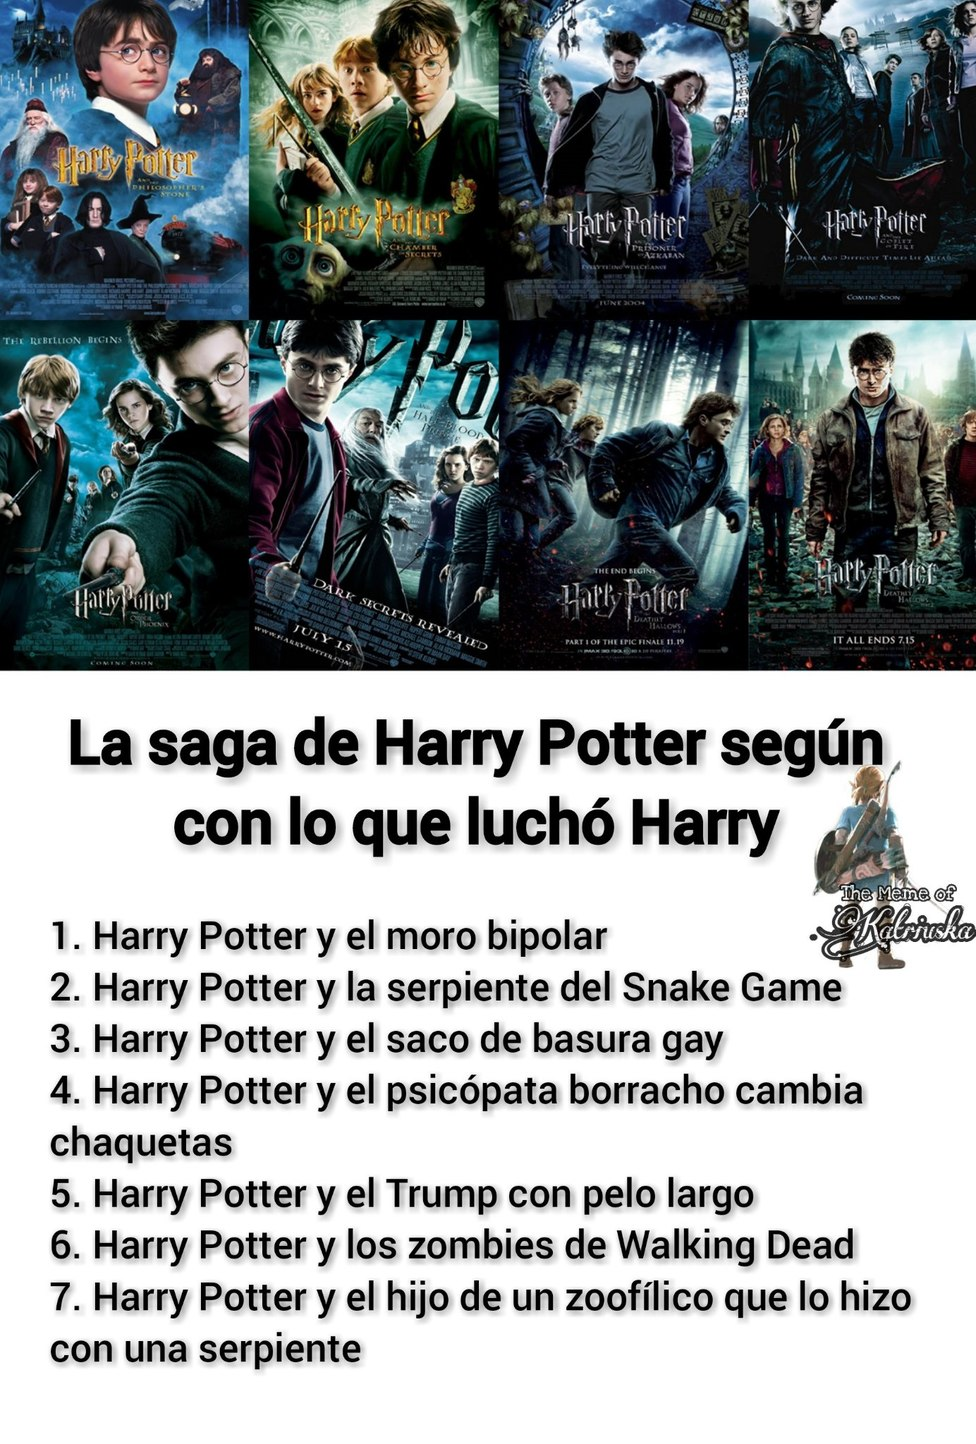 MEME HARRY POTTER